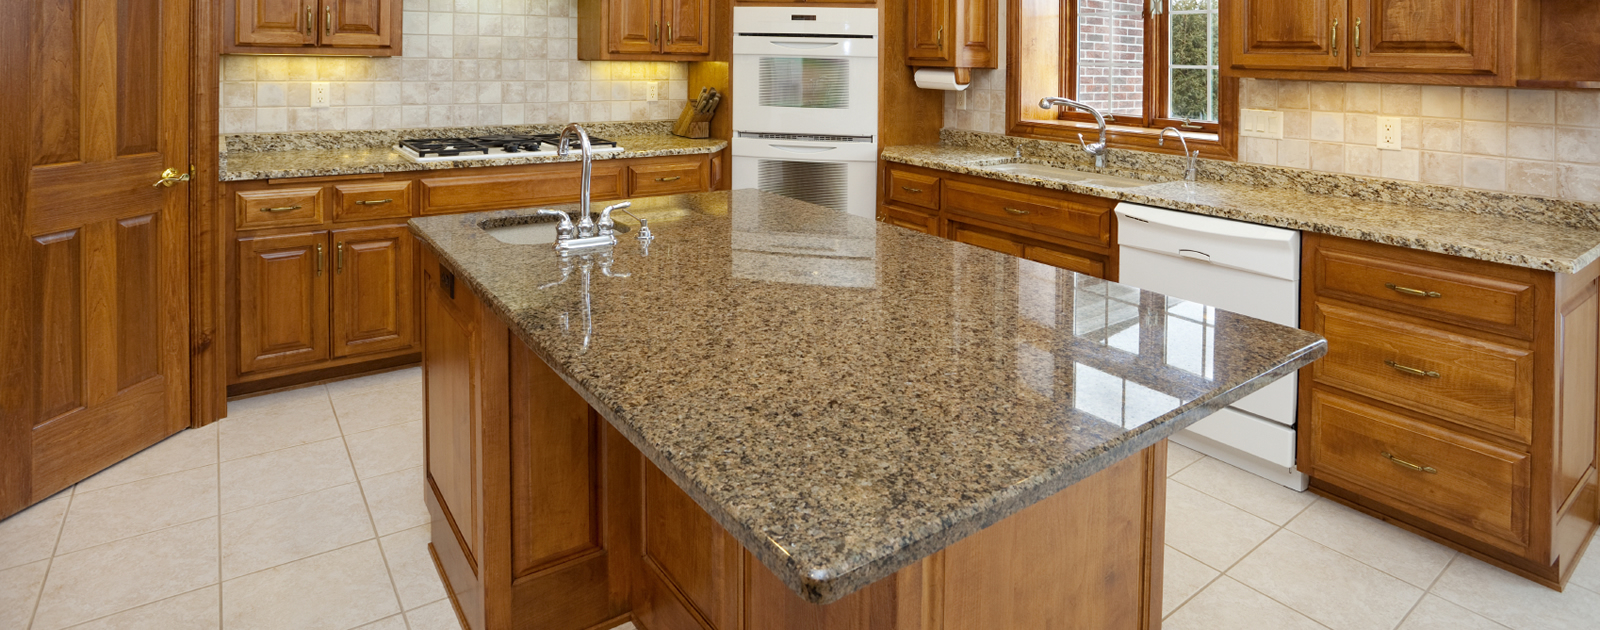 Natures Stone Granite Quality Granite Countertops